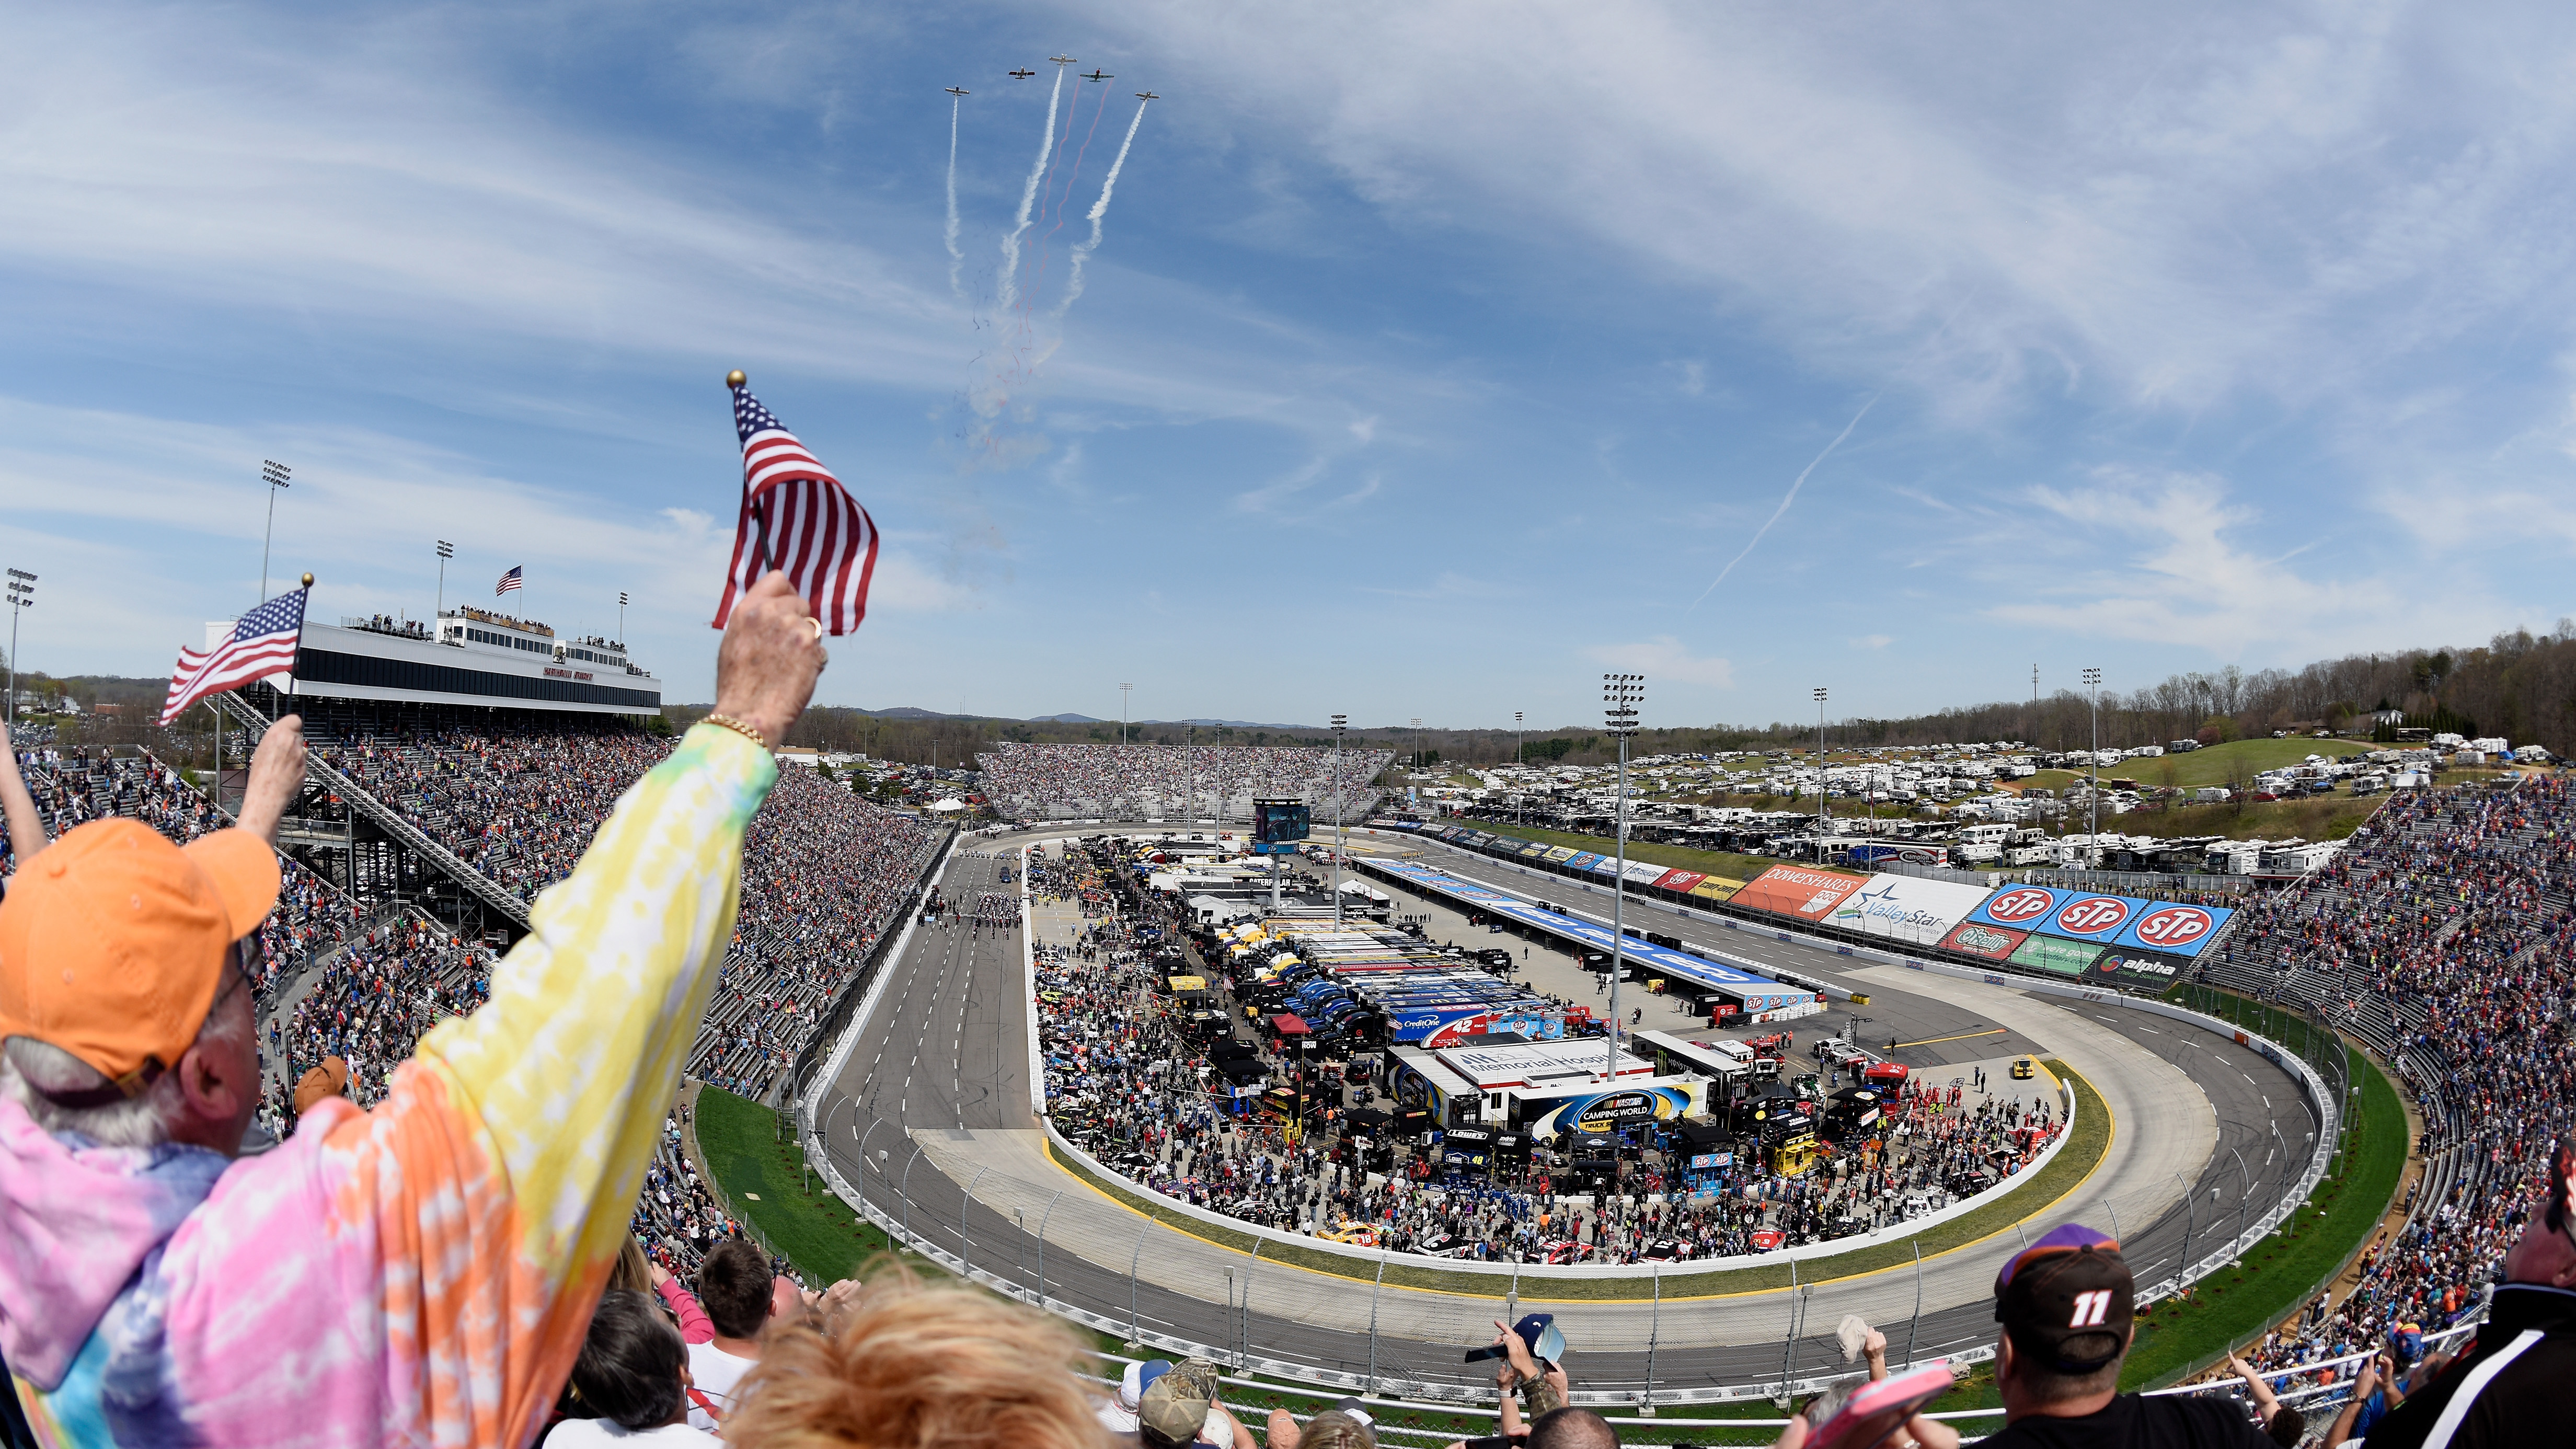 MARTINSVILLE, VA - APRIL 02:  Fans cheer during the flyover before the Monster Energy NASCAR Cup Series STP 500 at Martinsville Speedway on April 2, 2017 in Martinsville, Virginia.  (Photo by Jared C. Tilton/Getty Images)